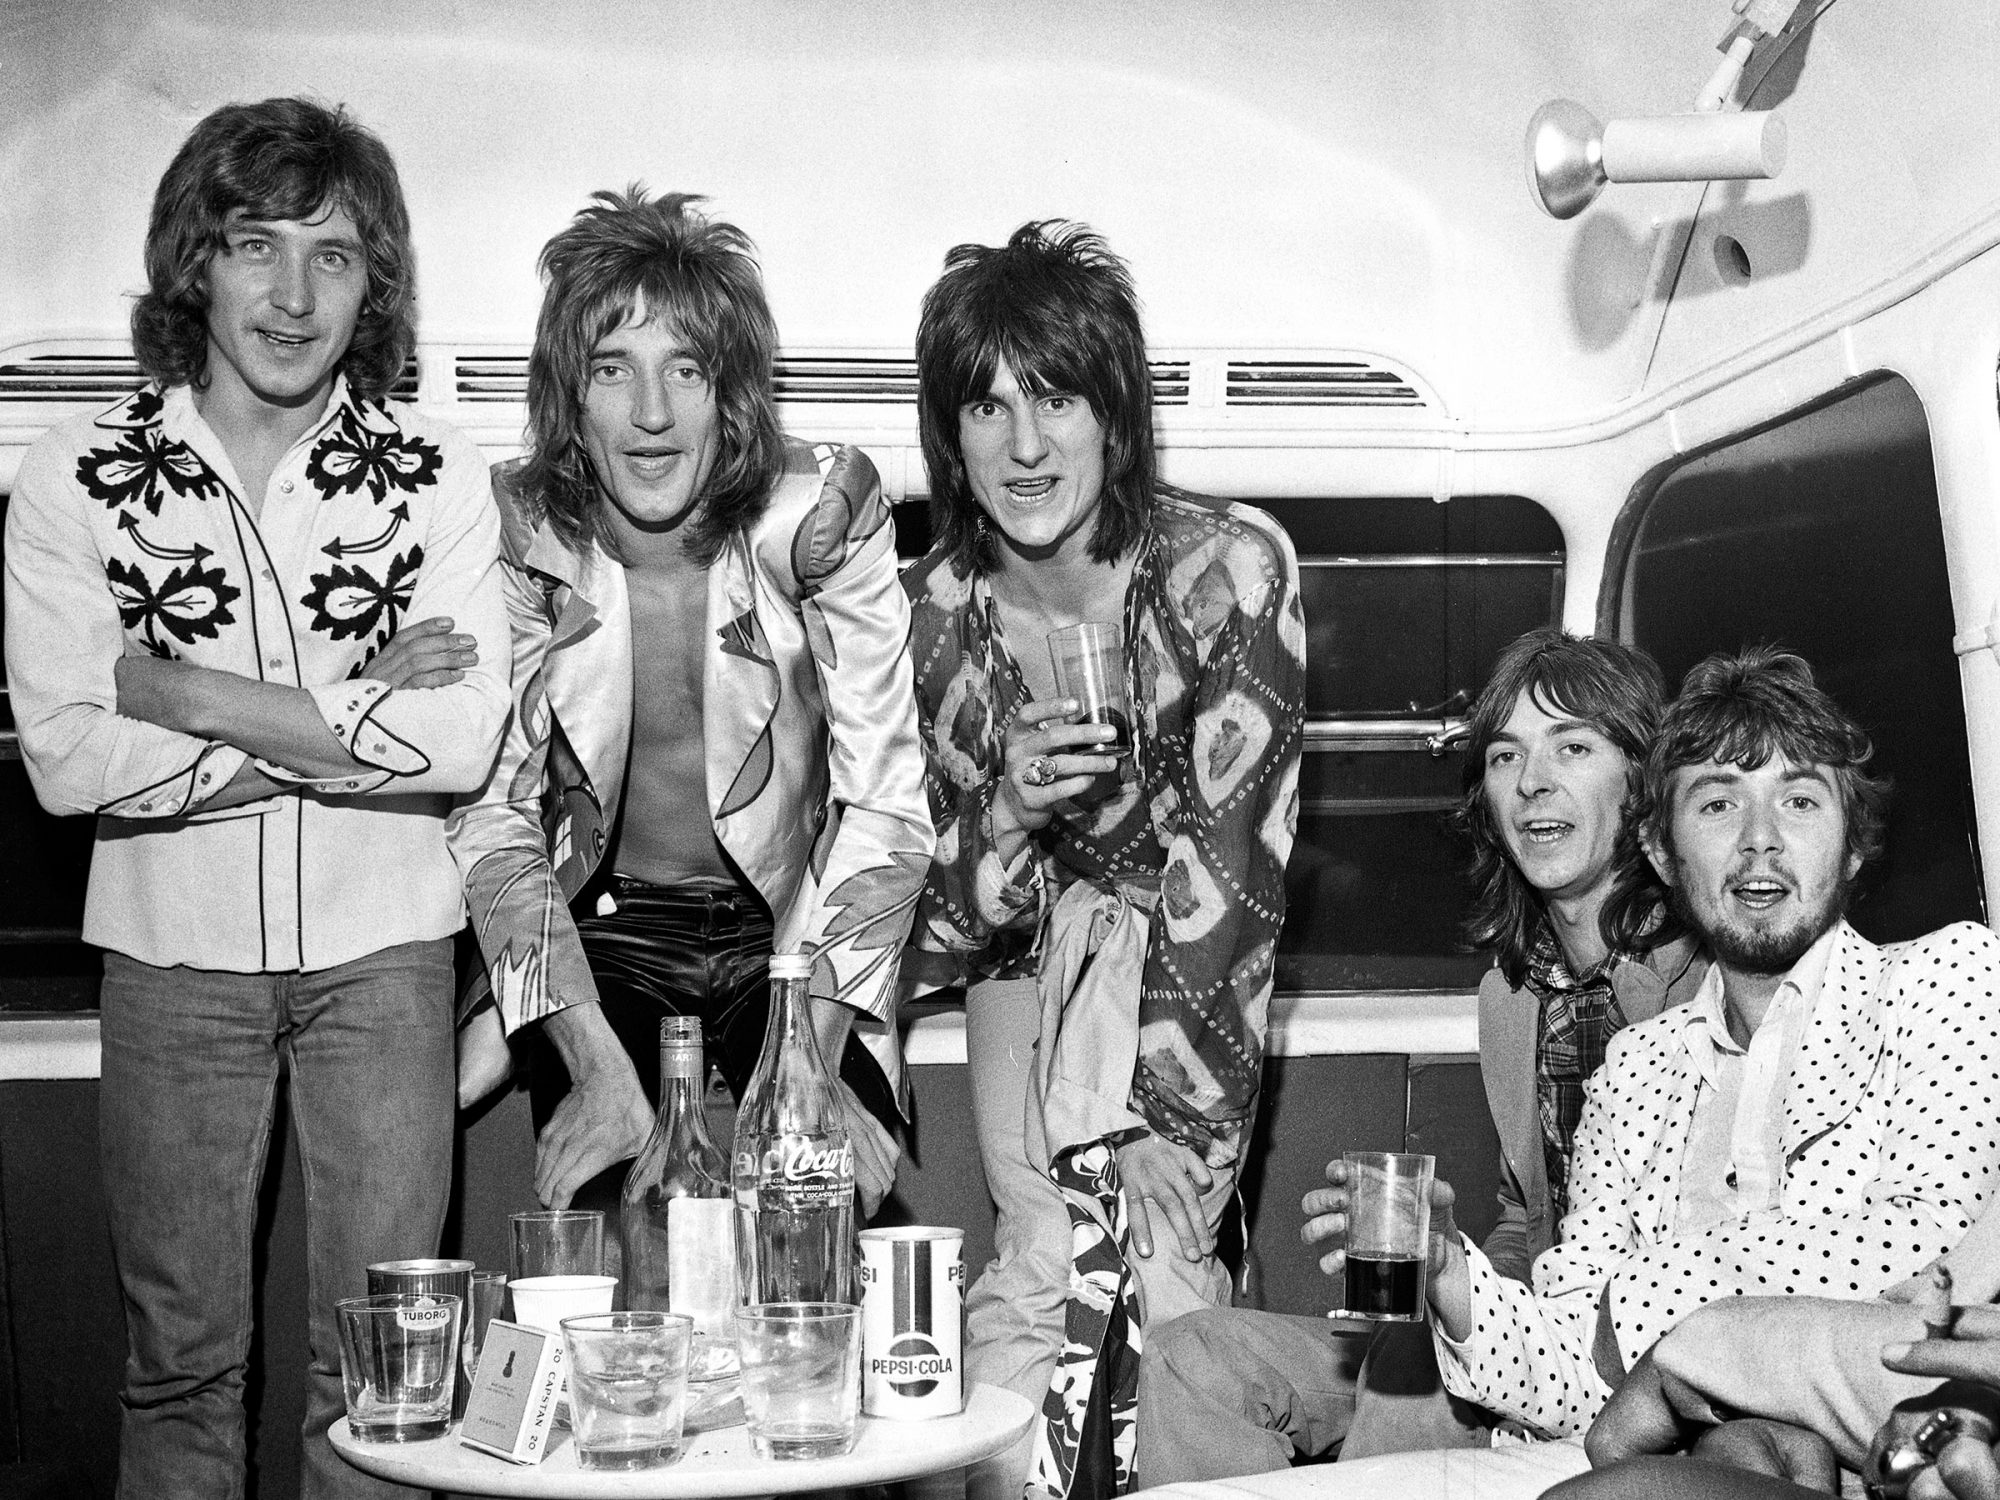 Photo of Kenney JONES and FACES and Ronnie LANE and Ian McLAGAN and Ronnie WOOD and Ron WOOD and Rod STEWART